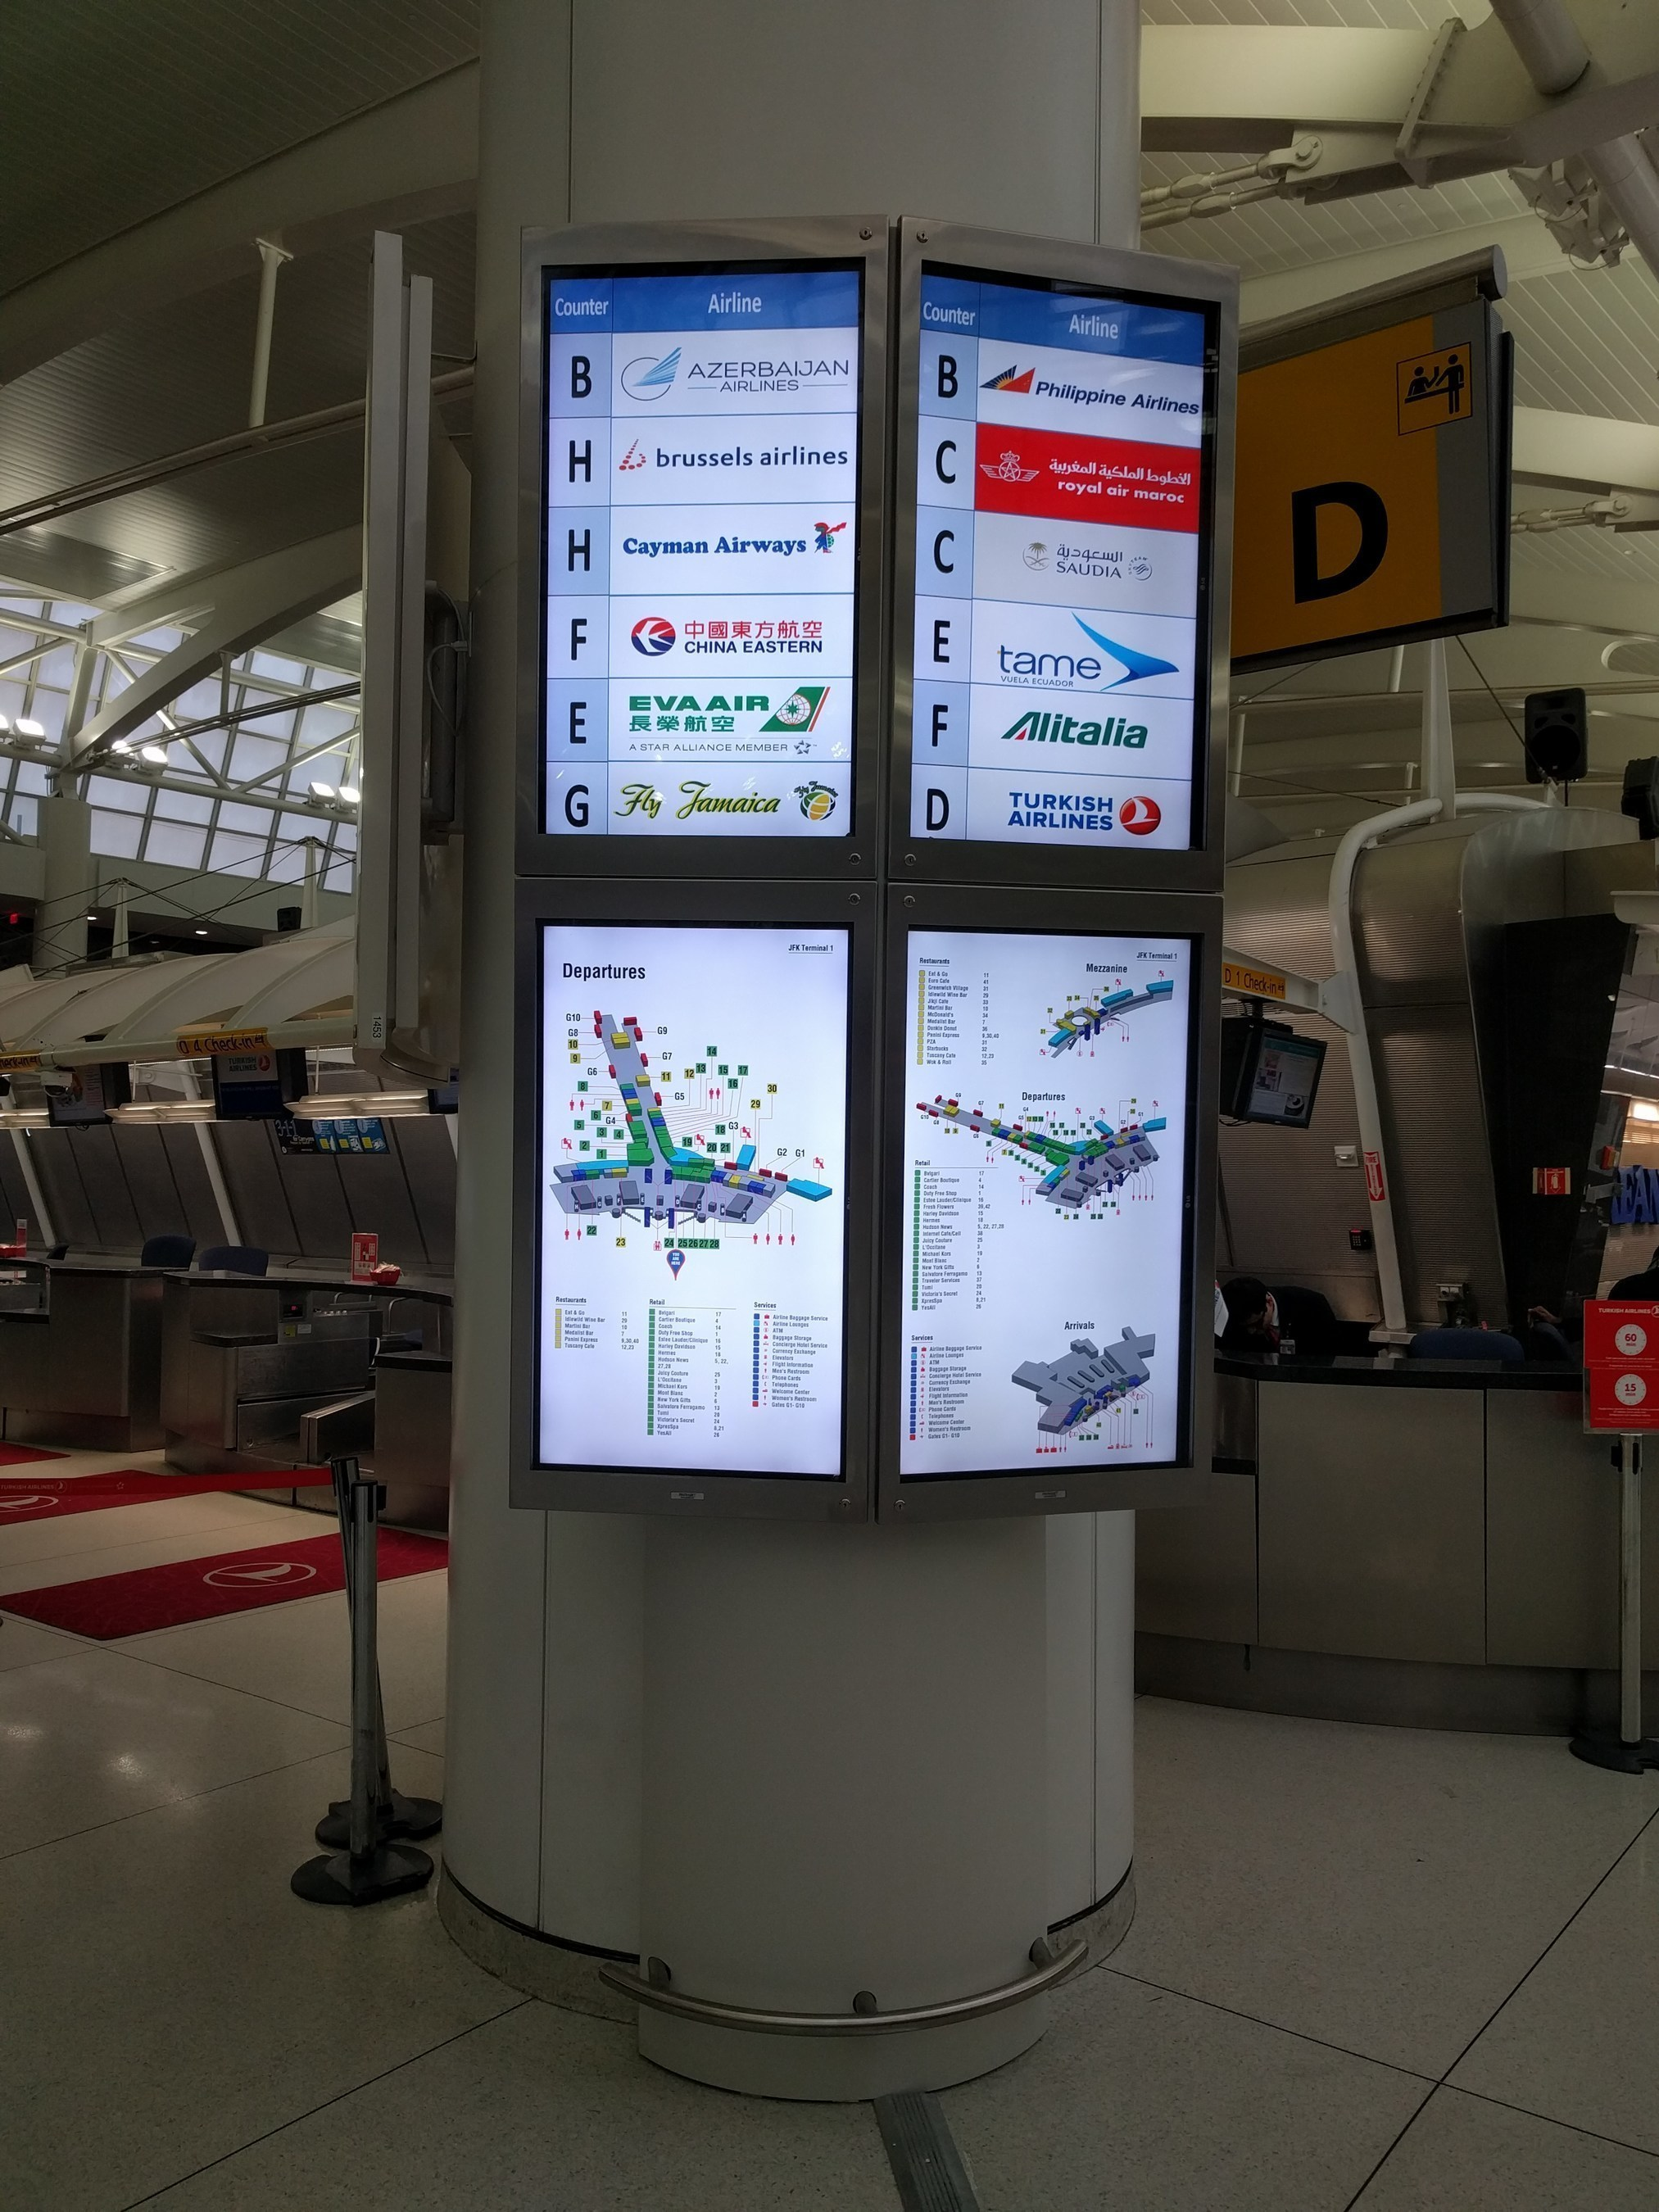 Parabit Systems Completes First Phase of Flight Information Display Renovation at Terminal 1, JFK